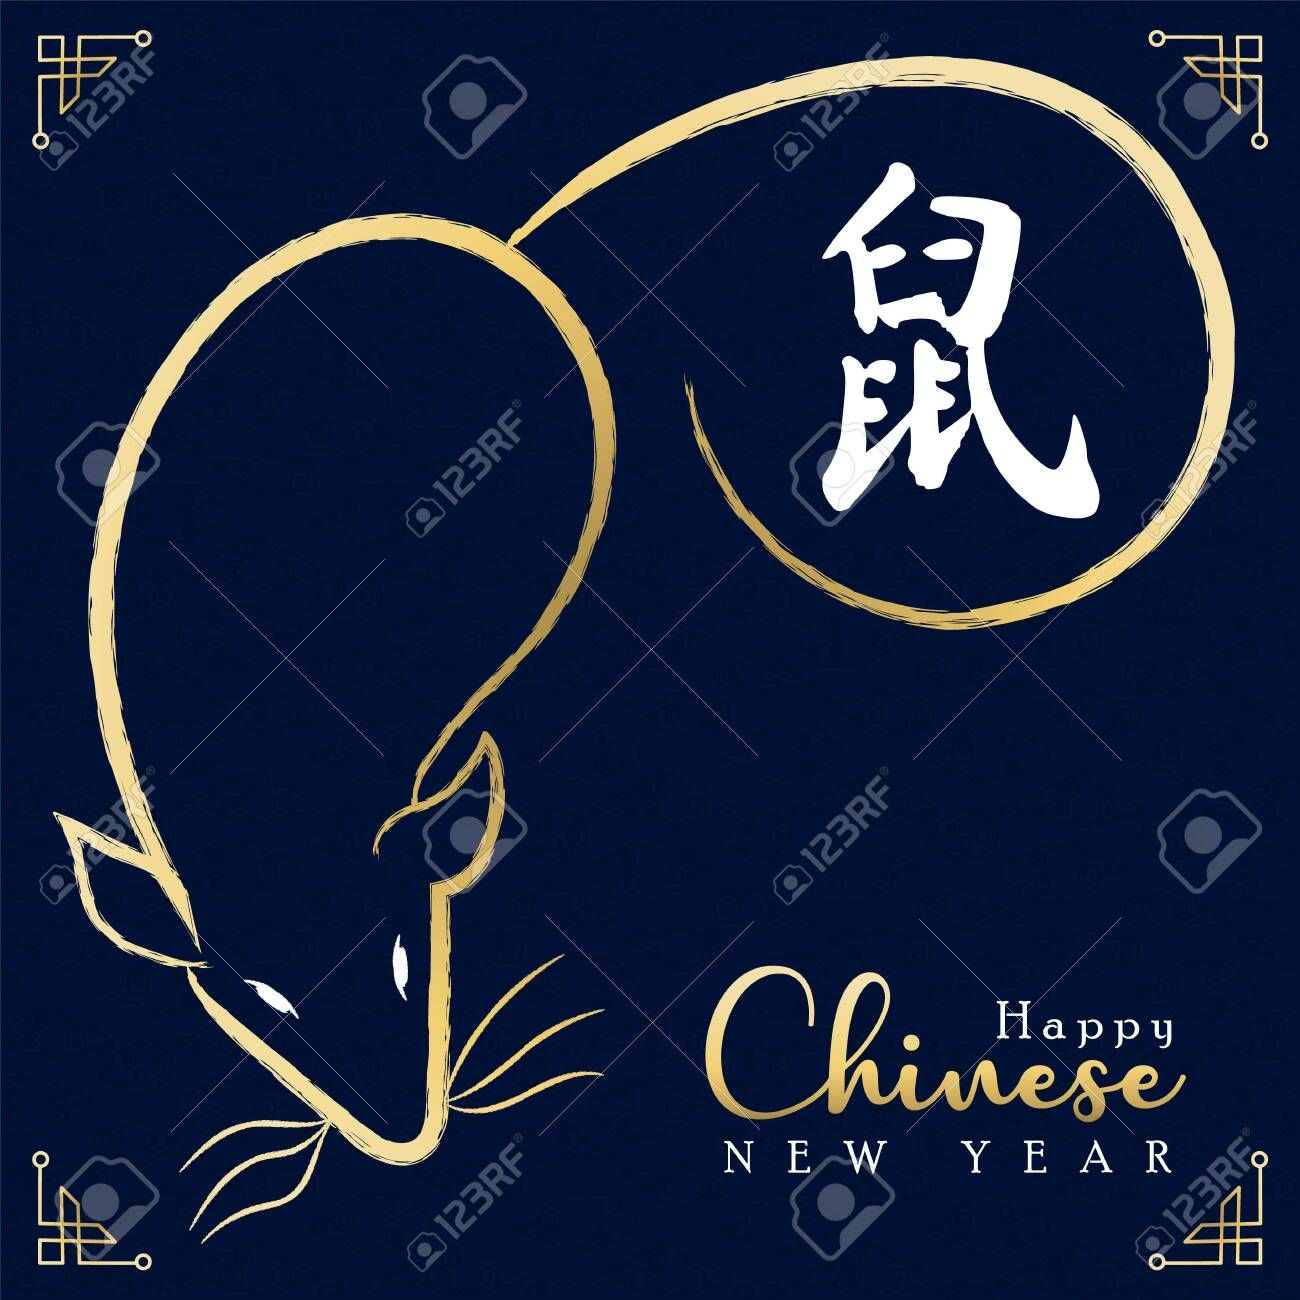 Chinese New Year 2020 greeting card of gold mouse animal in hand drawn asian art style. , #ad, #greeting, #card, #gold, #Chinese, #Year